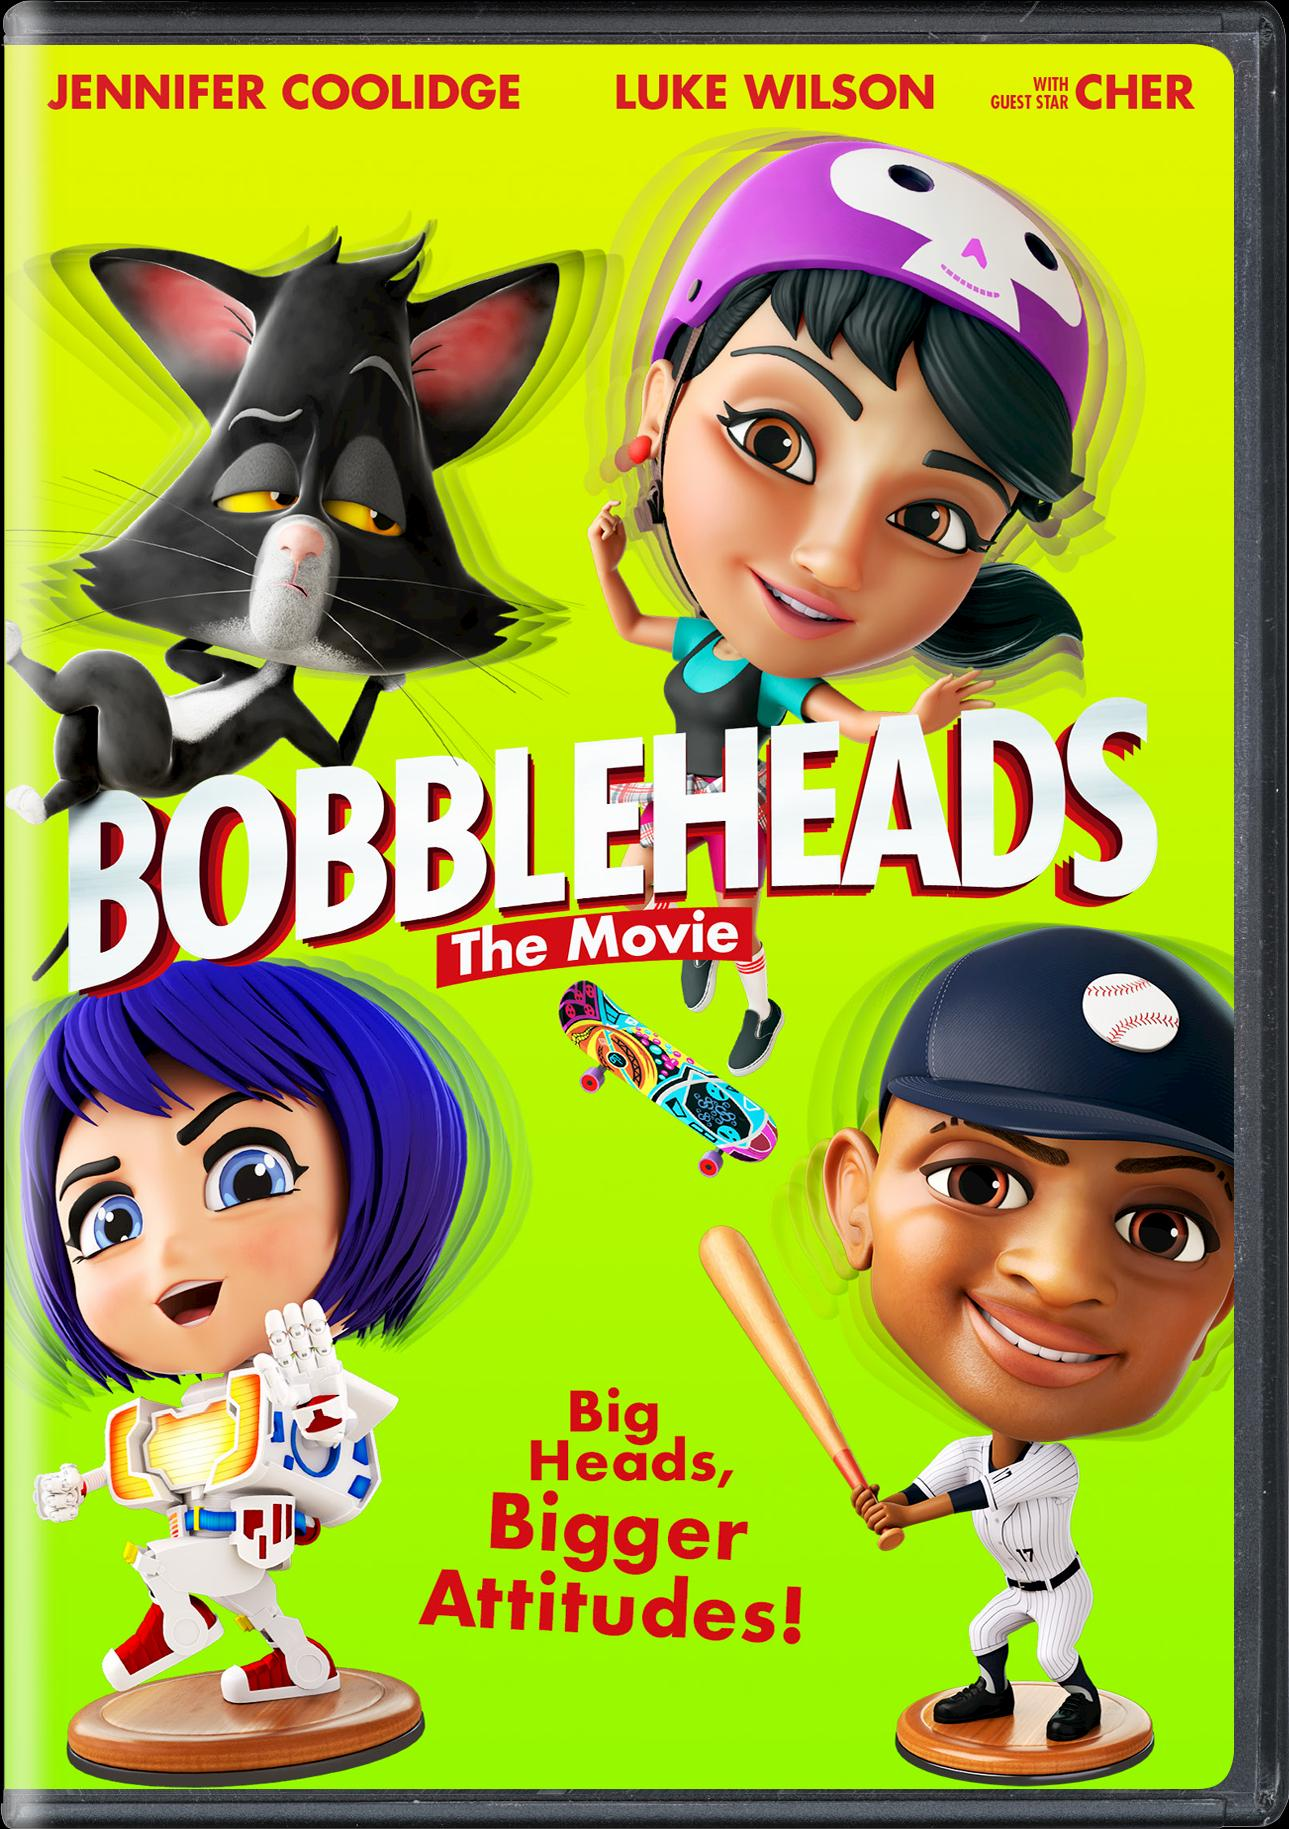 Bobbleheads: The Movie Review